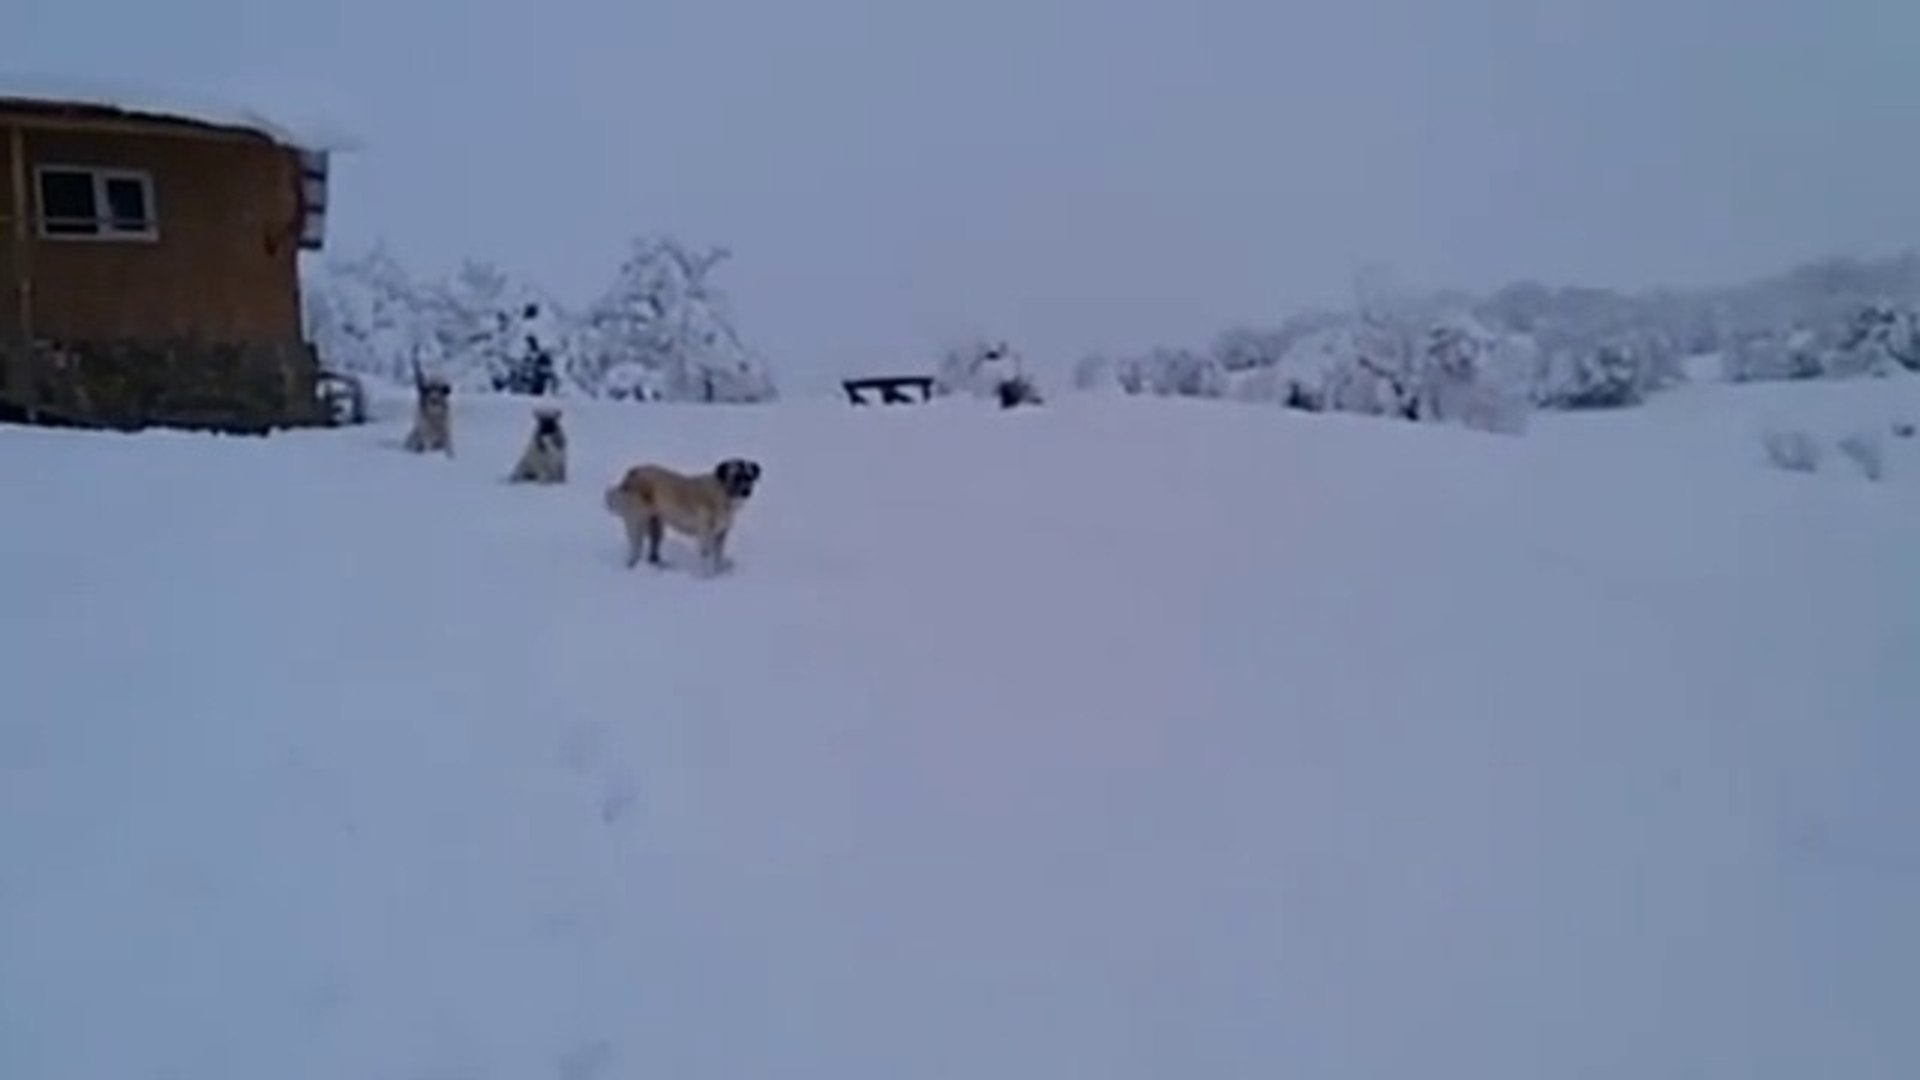 COBAN KOPEKLERi ve KAR MANZARASI - ANATOLiAN SHEPHERD DOGS and ViEWS SNOW